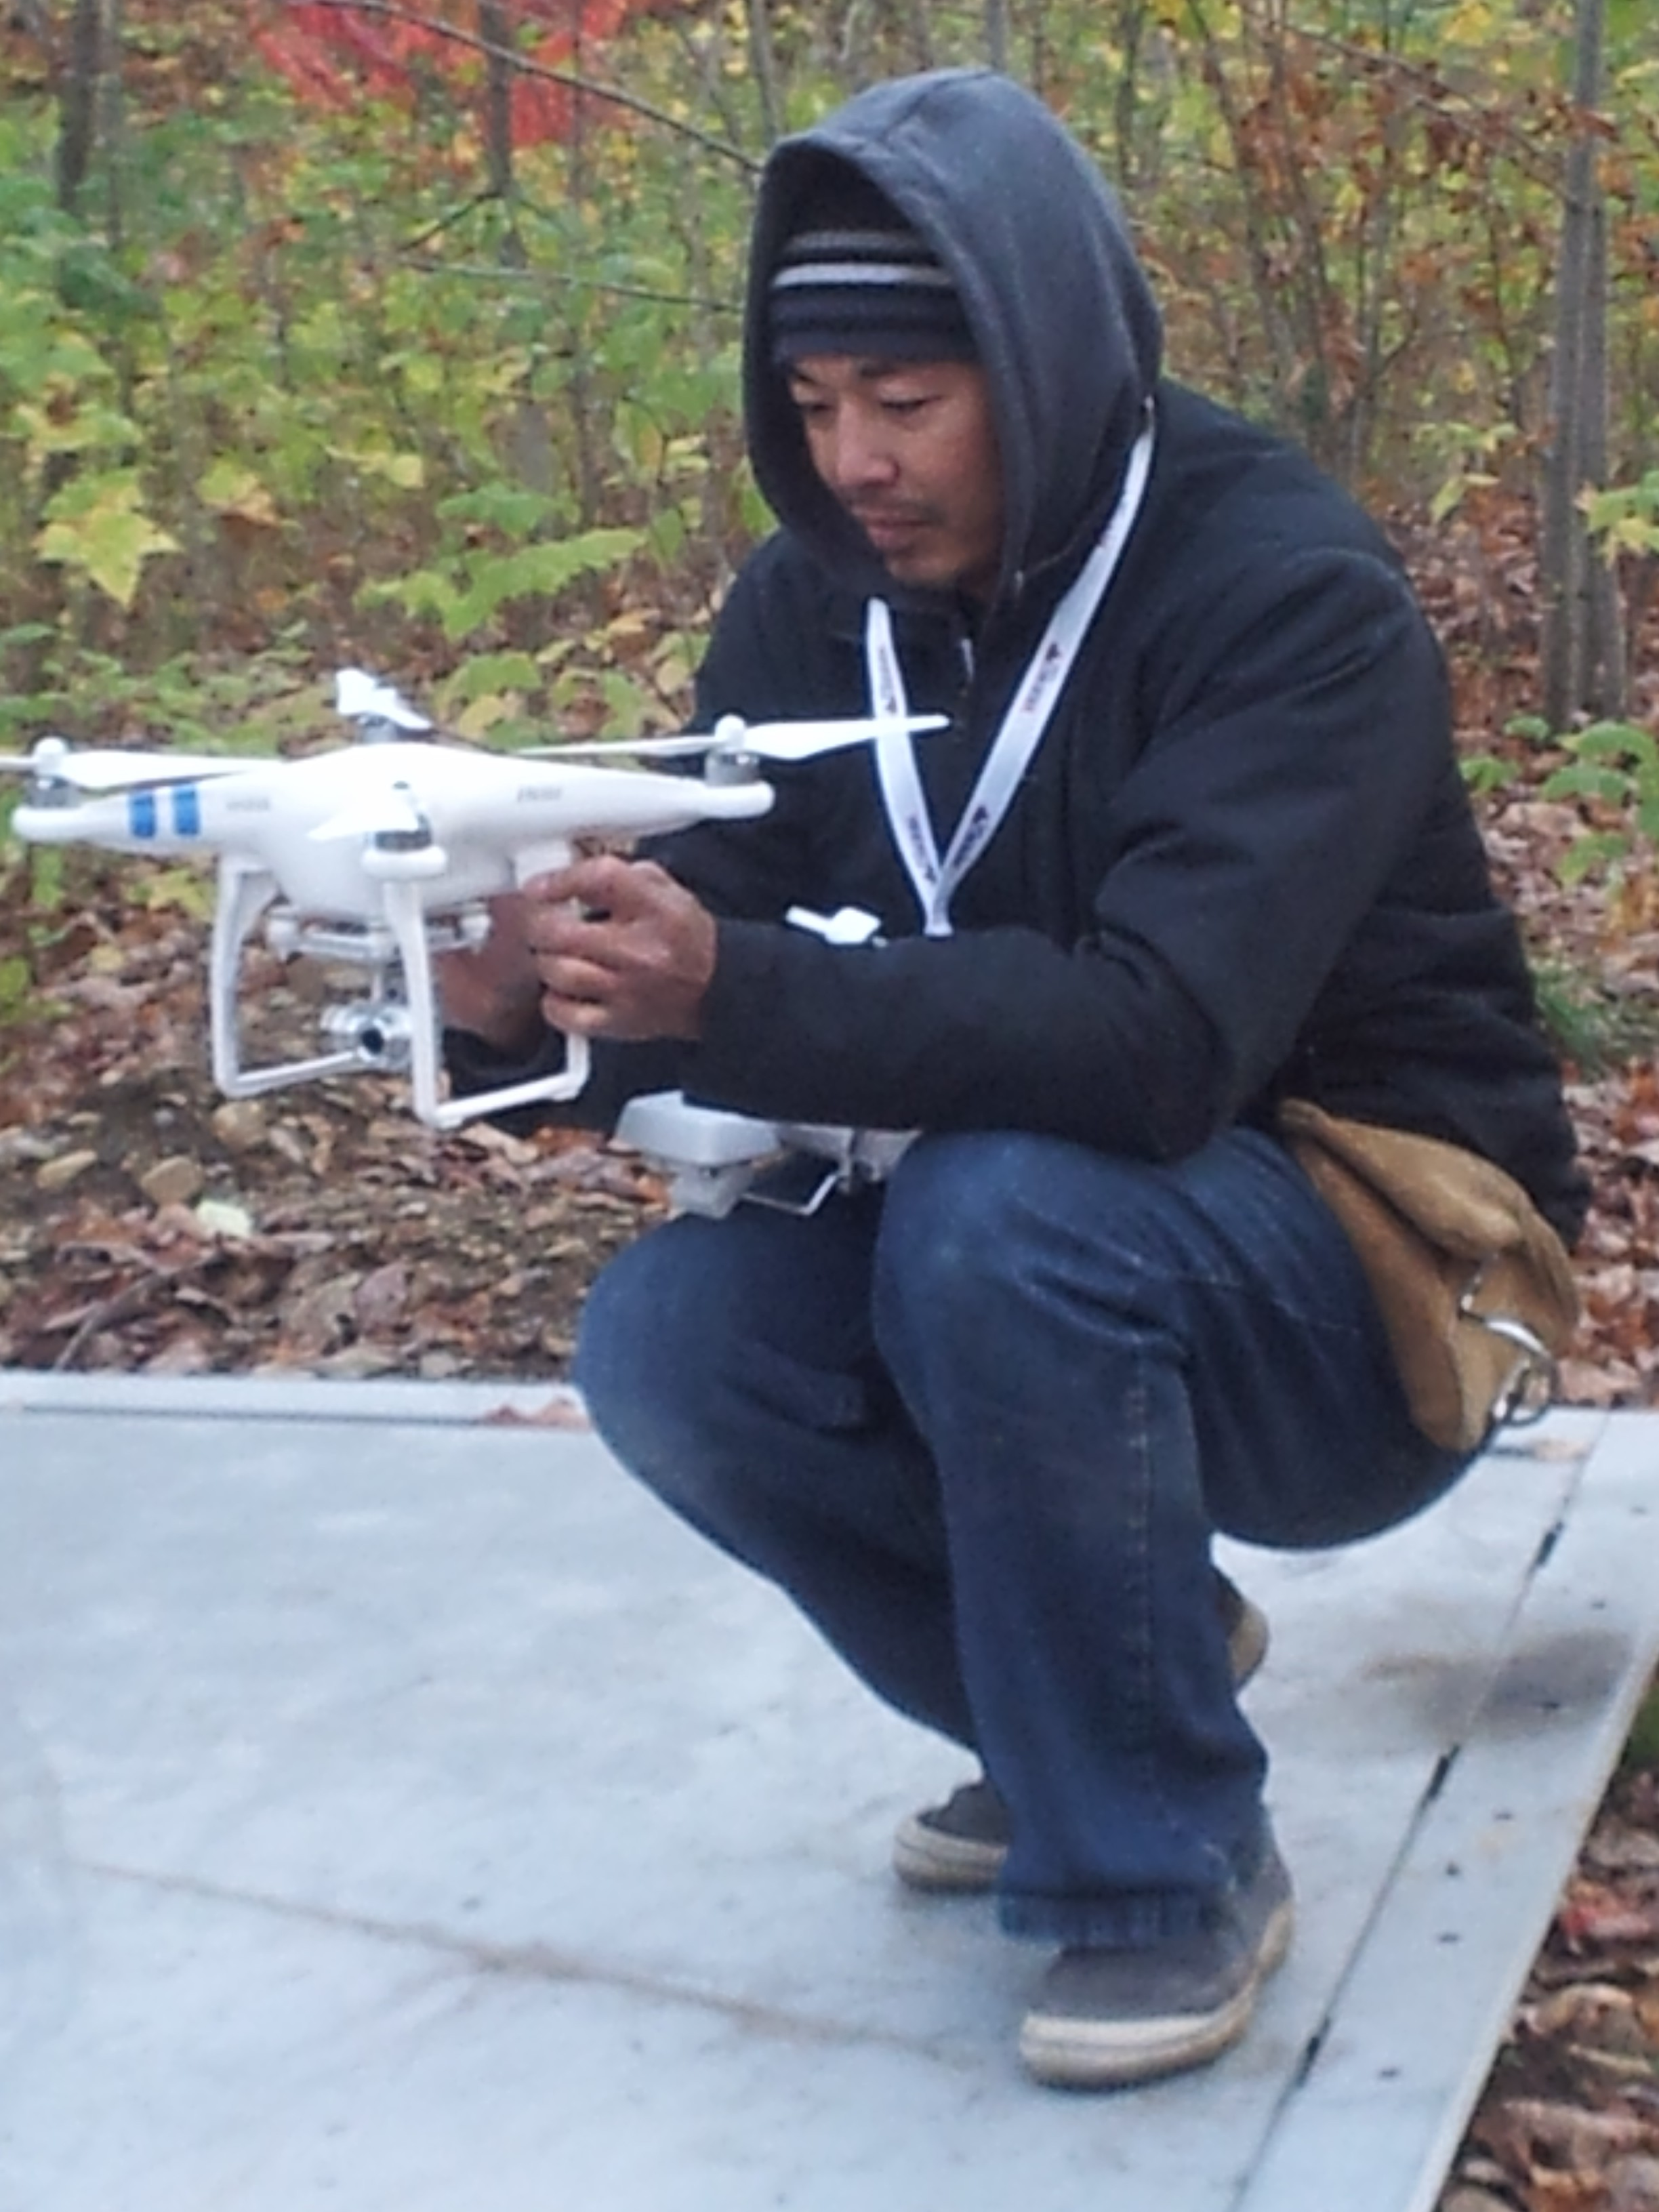 Hien setting up his Drone for Arial construction video capture.